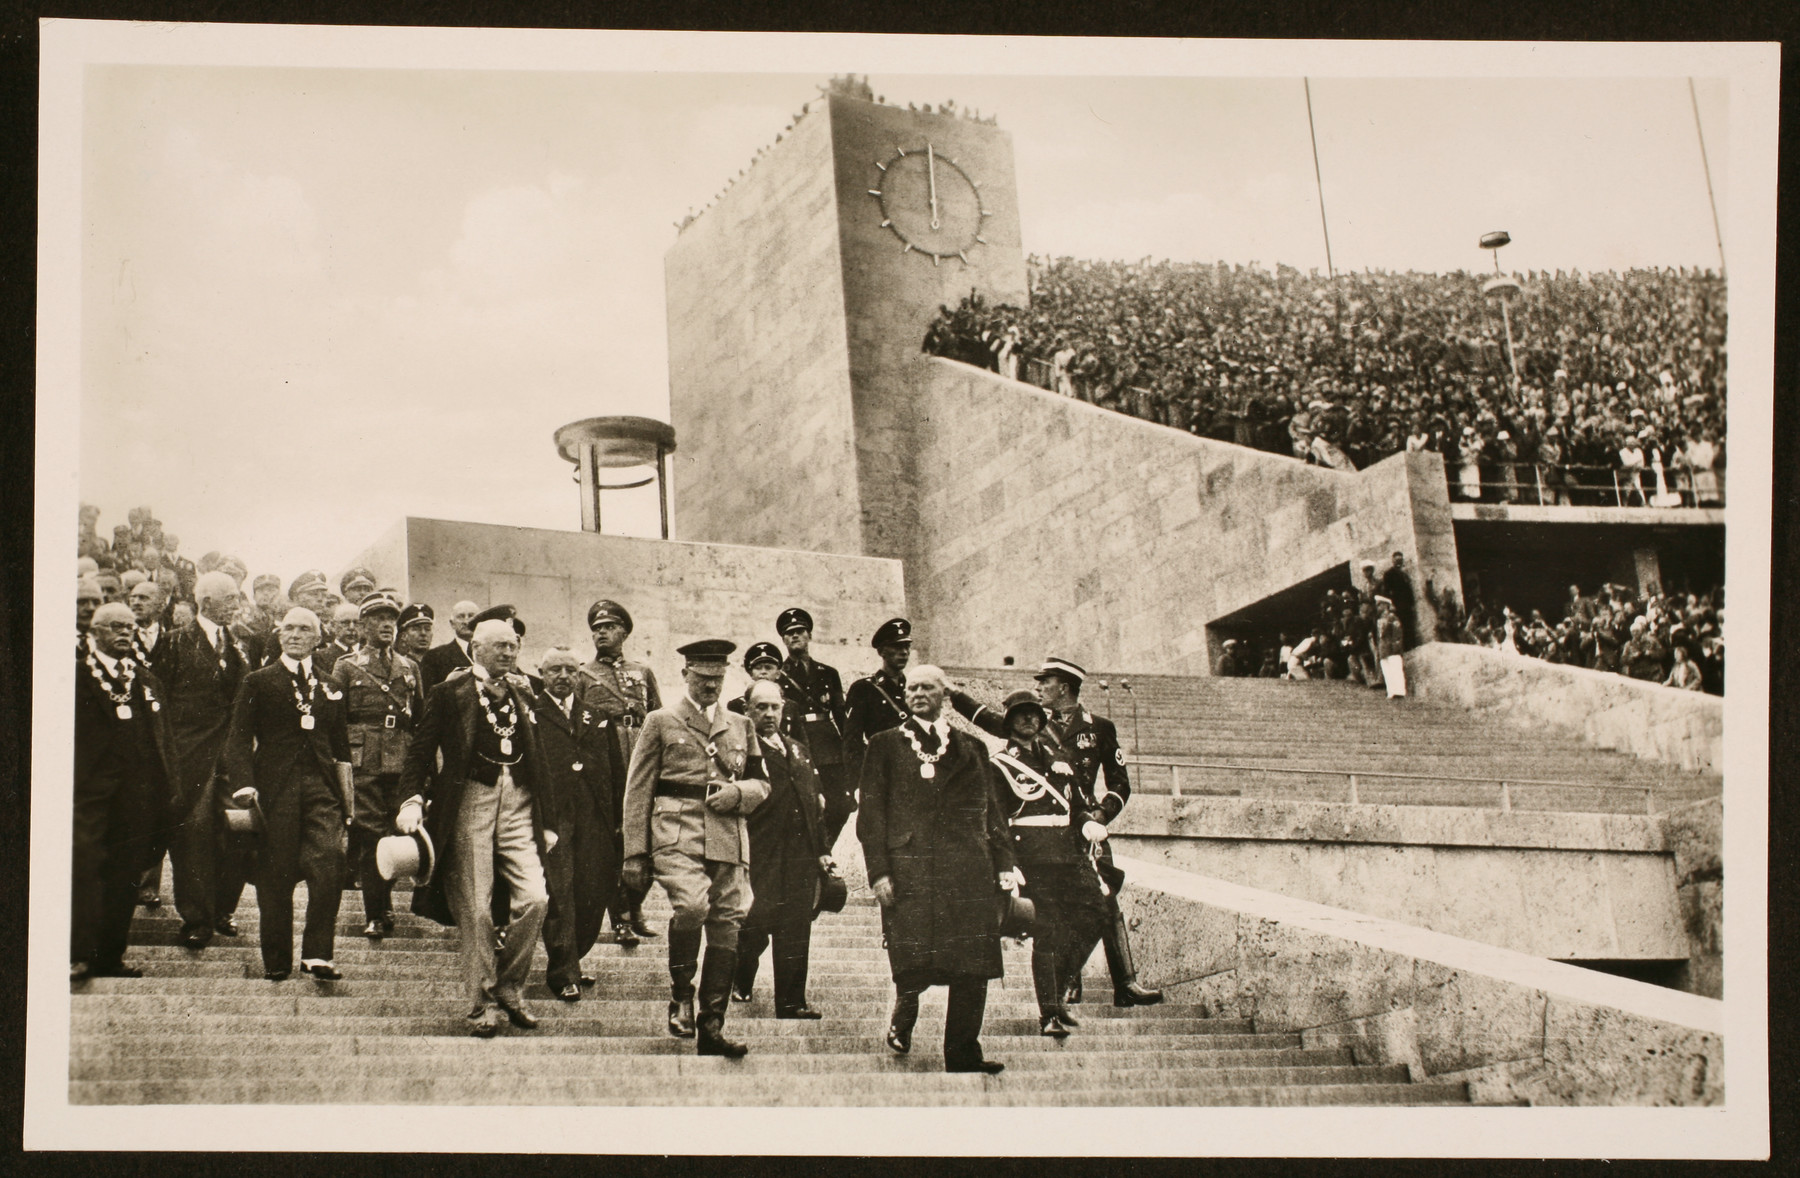 Hitler descends the stairs of the Olympic Stadium with several members of the International Olympic Committee, including Dr. Theo Lewald (R) and Henri de Baillet-Latour, the IOC president (L), to open the 11th Olympic Games.